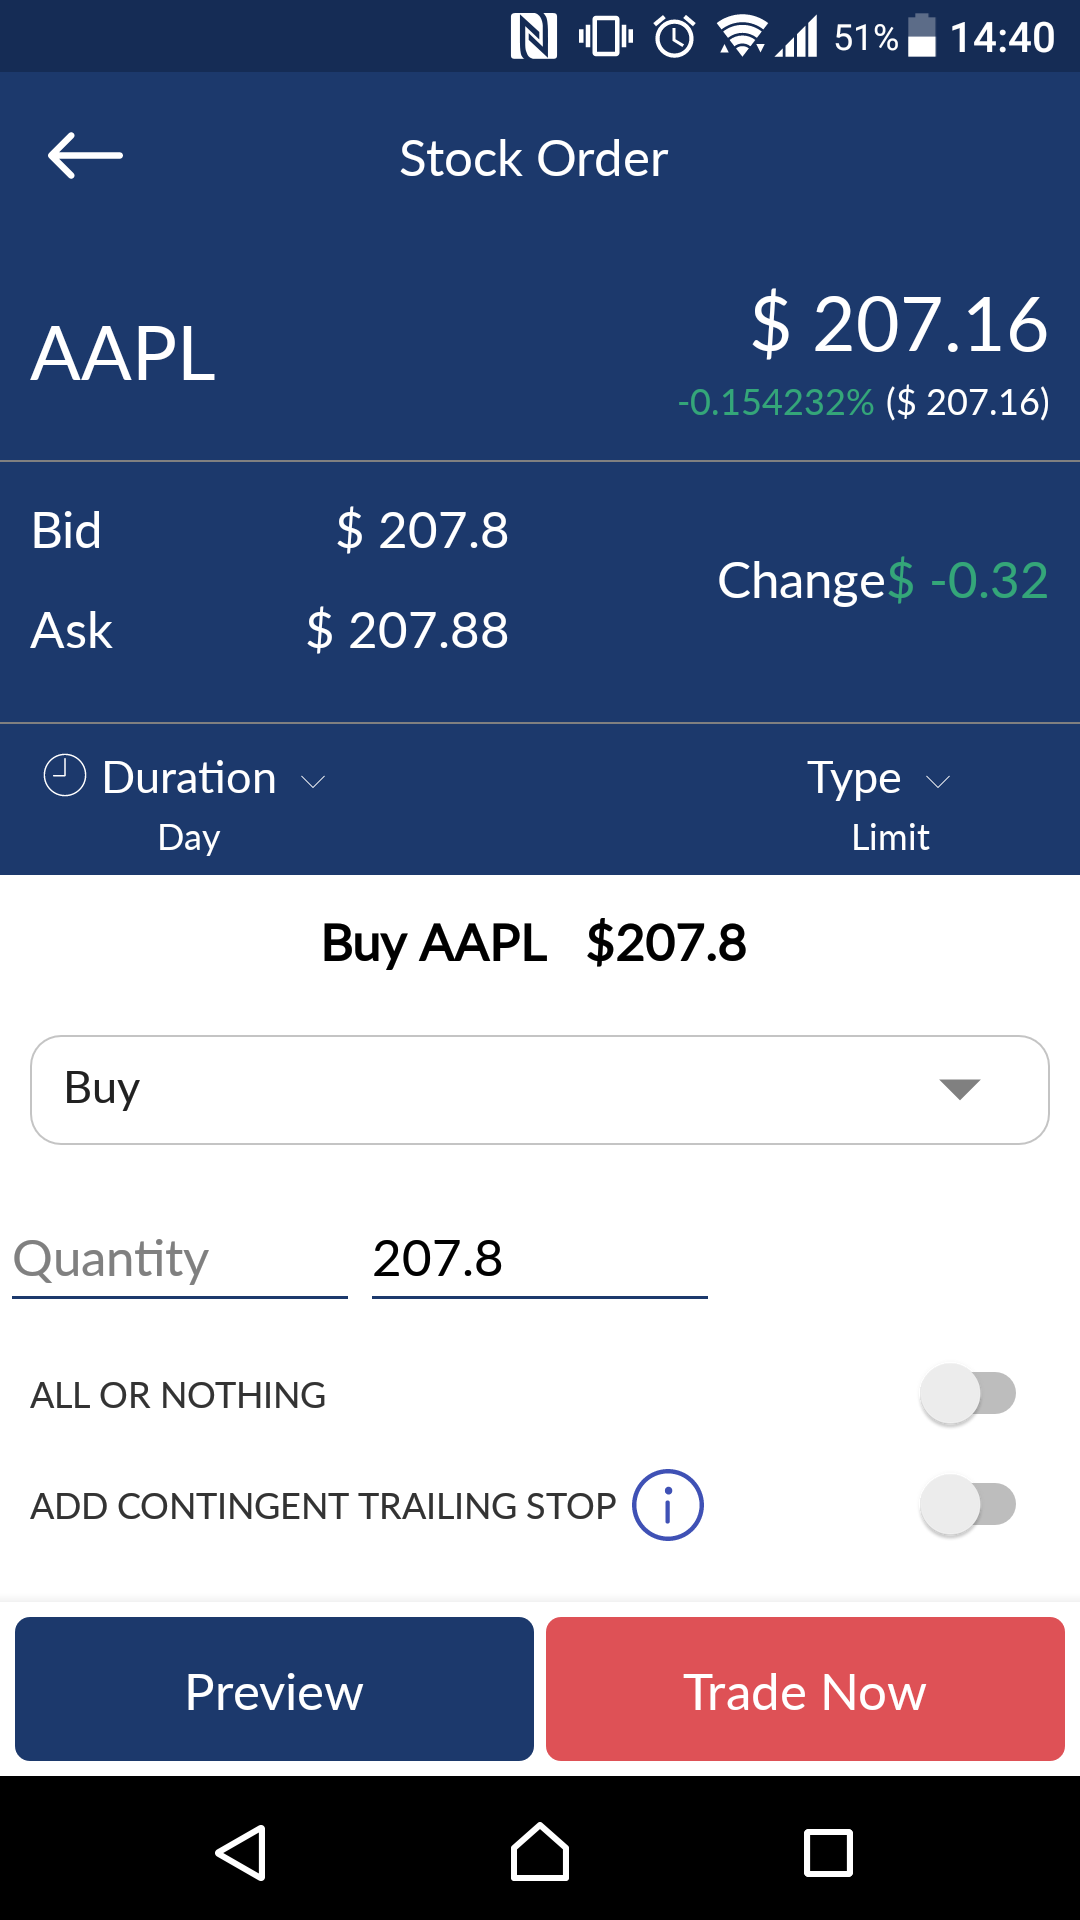 ChoiceTrade review - Mobile trading platform - Order panel